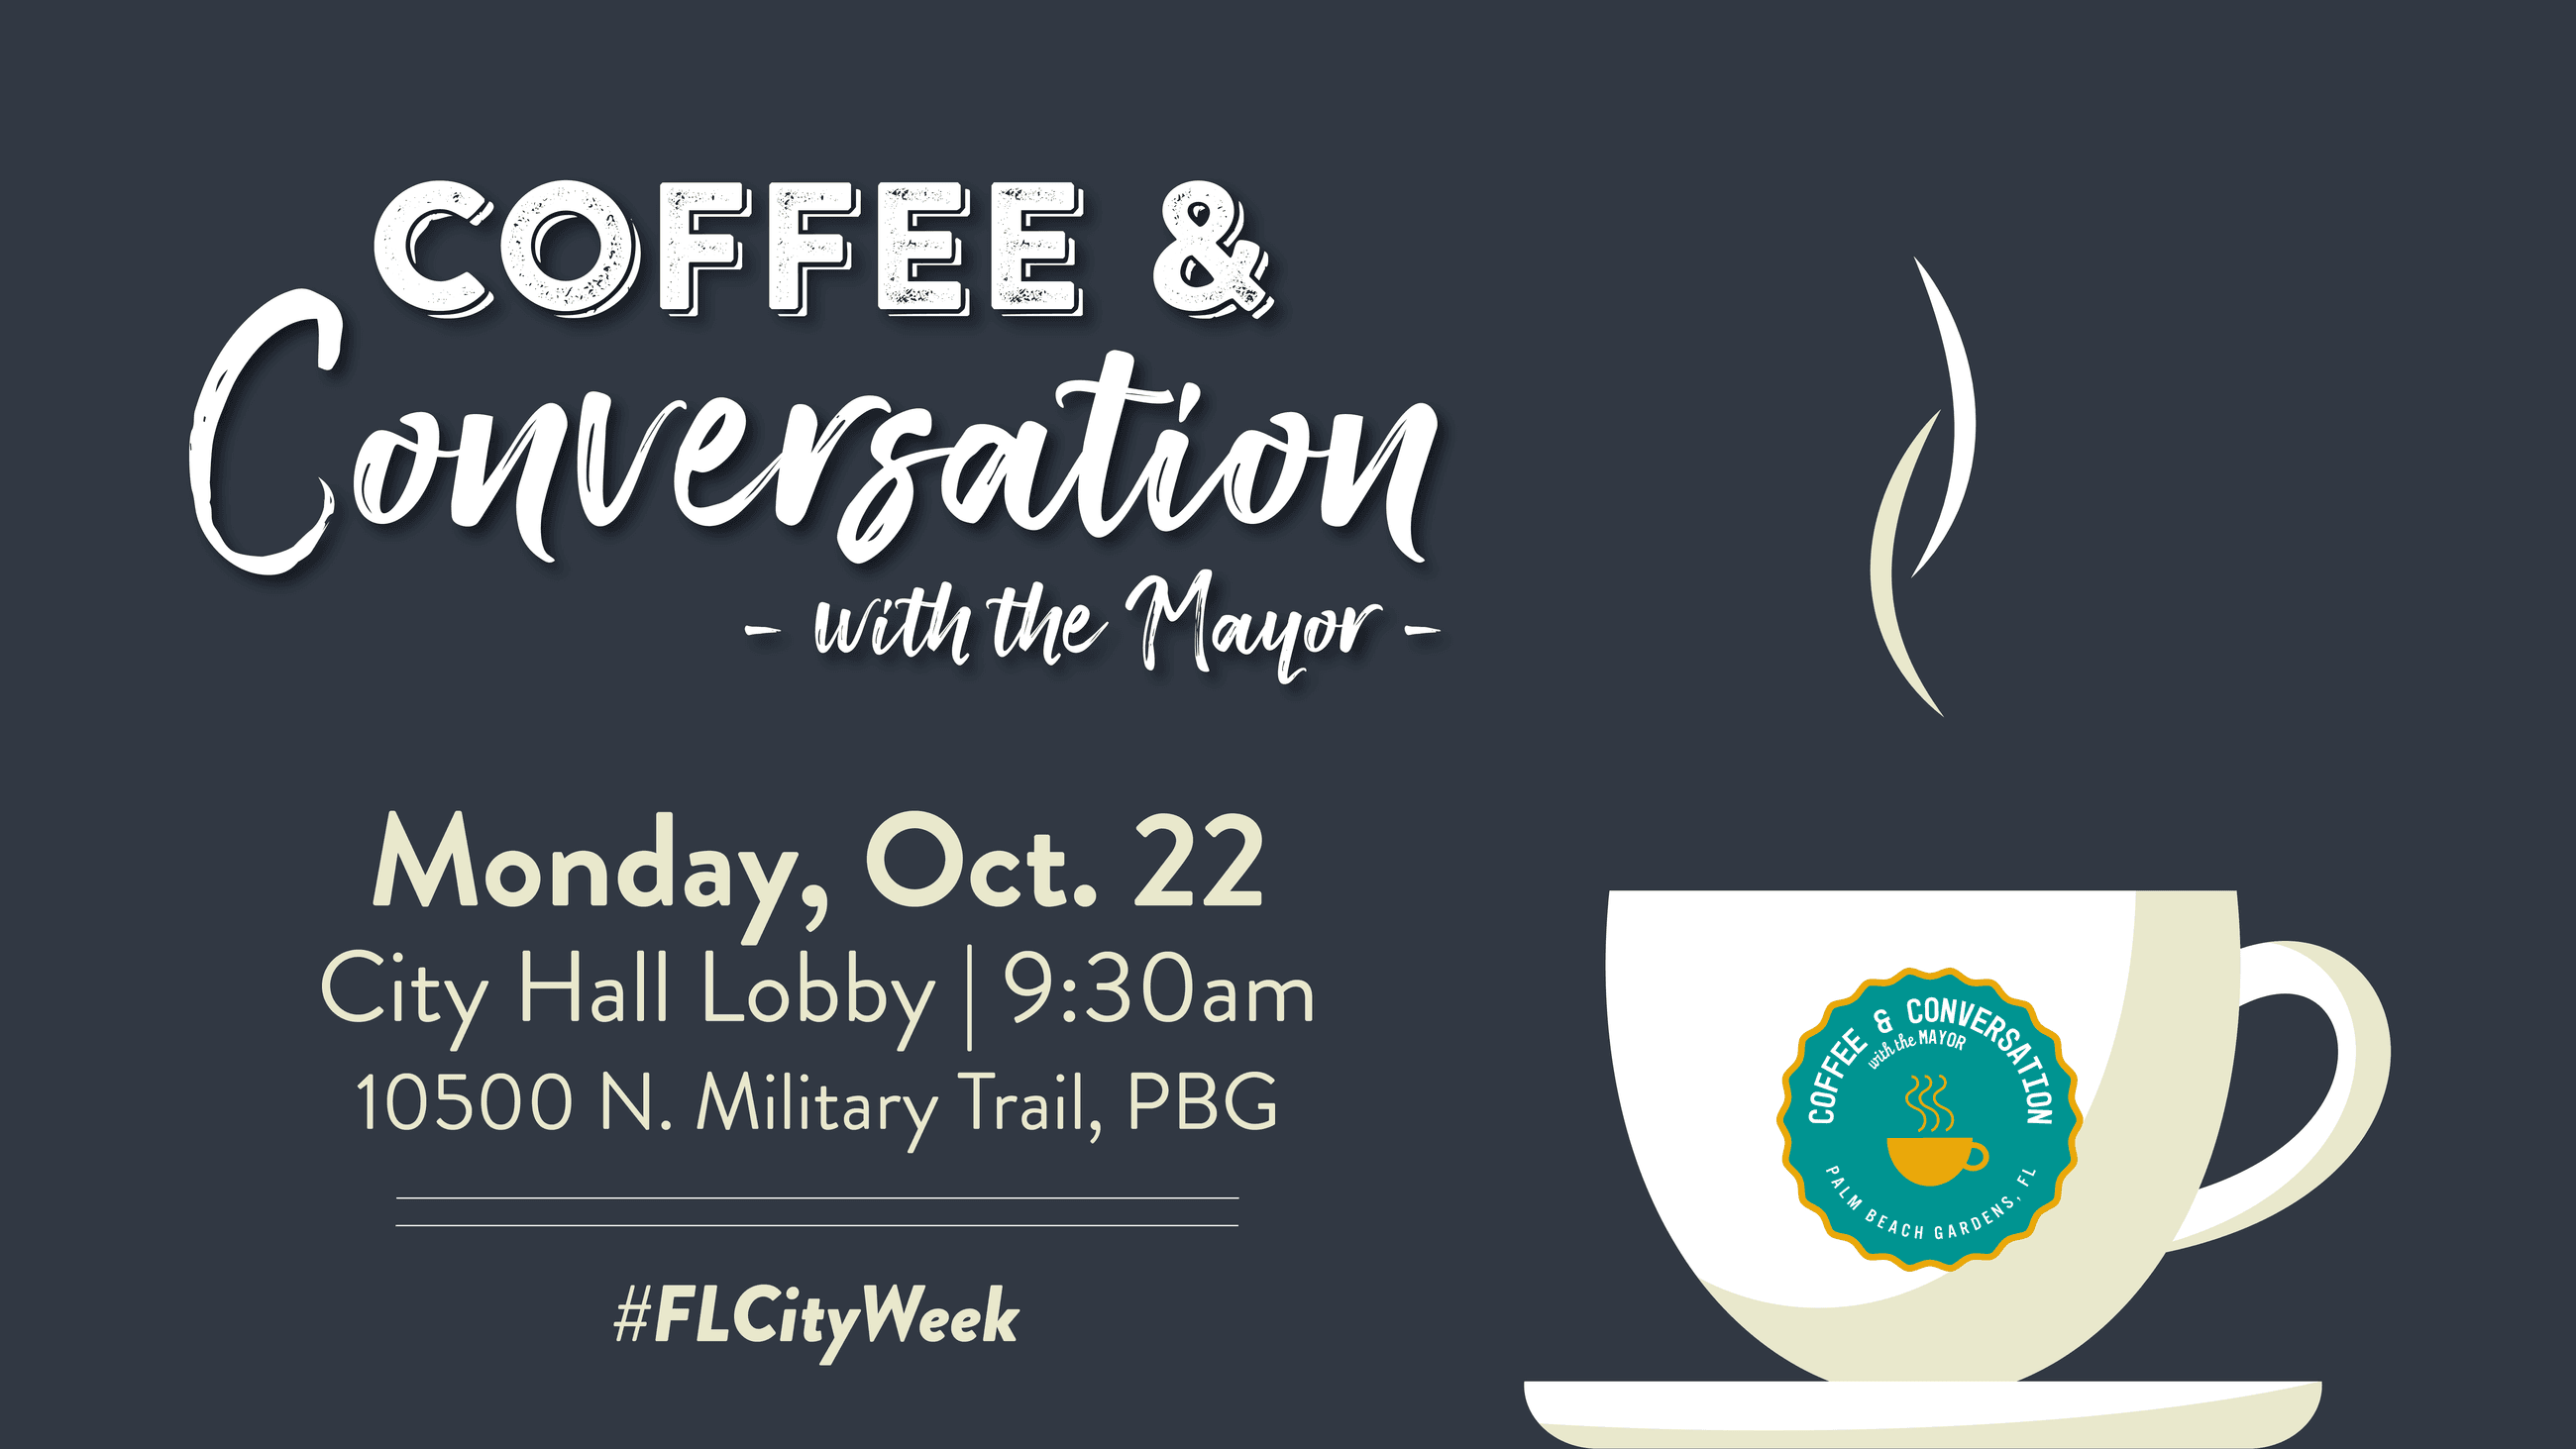 Coffee & conversation with the Mayor Monday, October 22nd at 9:30 a.m. in the City Hall lobby